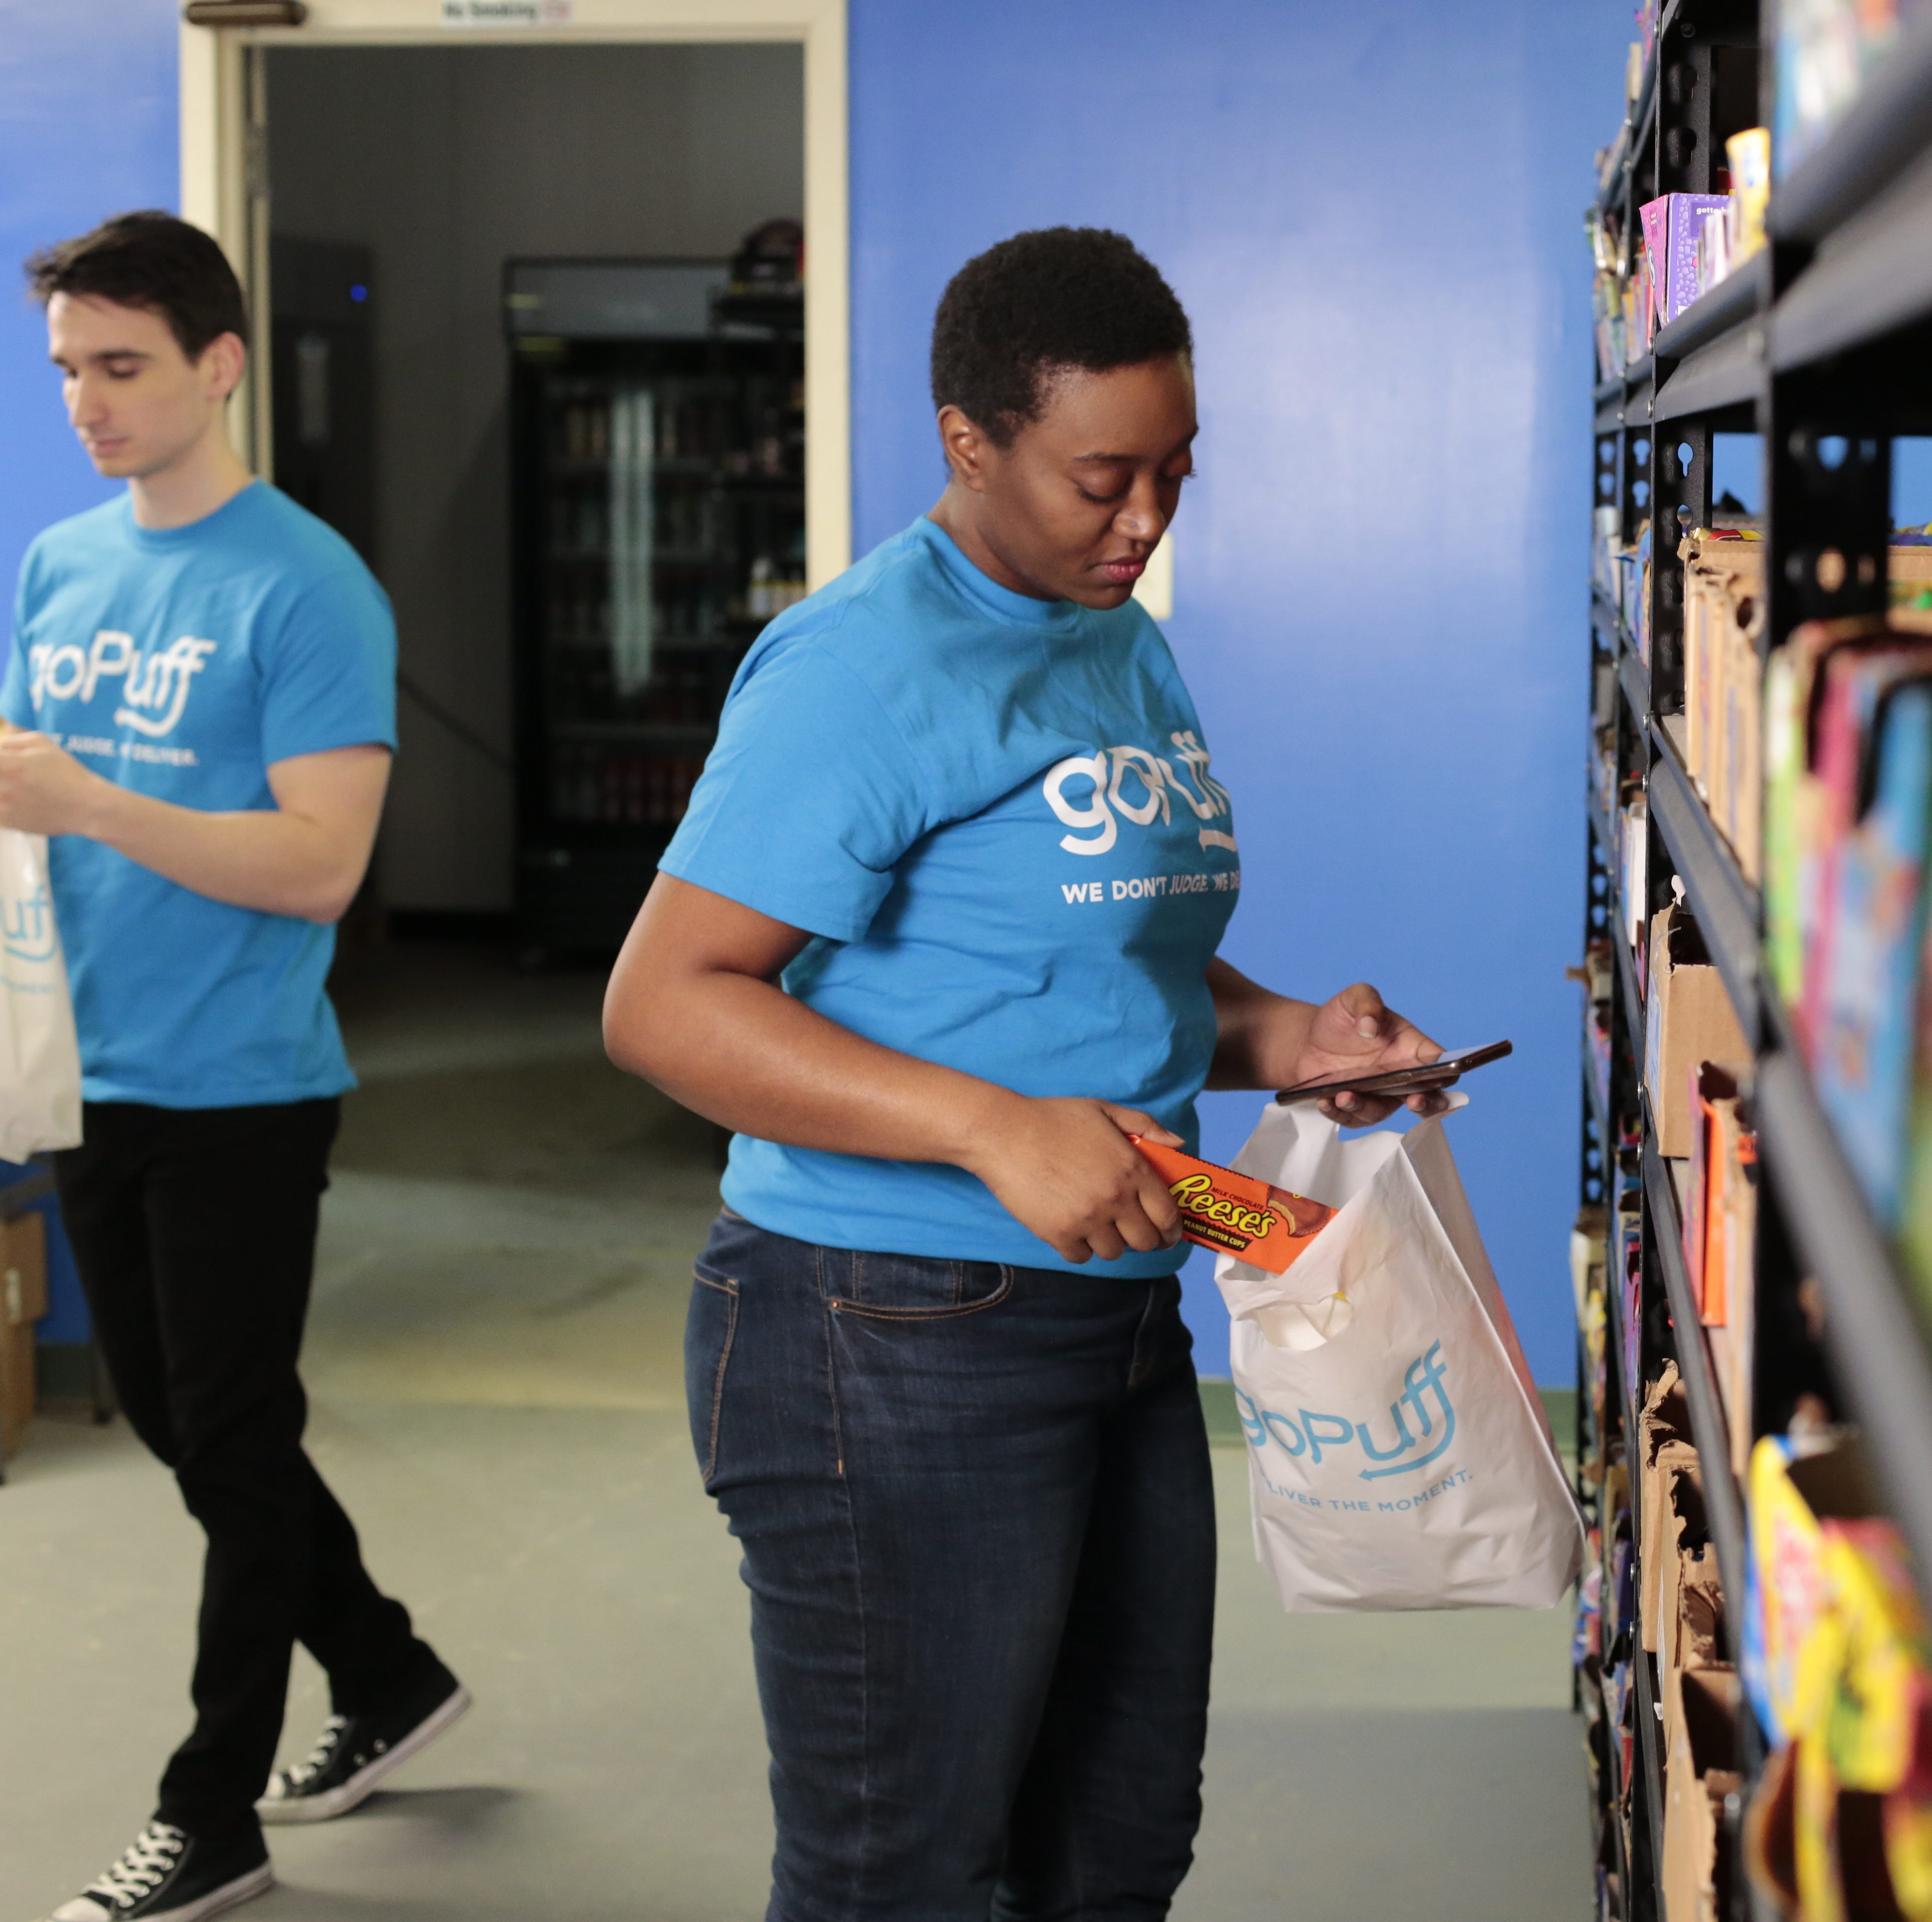 GoPuff delivers snacks to your door. The service launches in the Lansing area today.